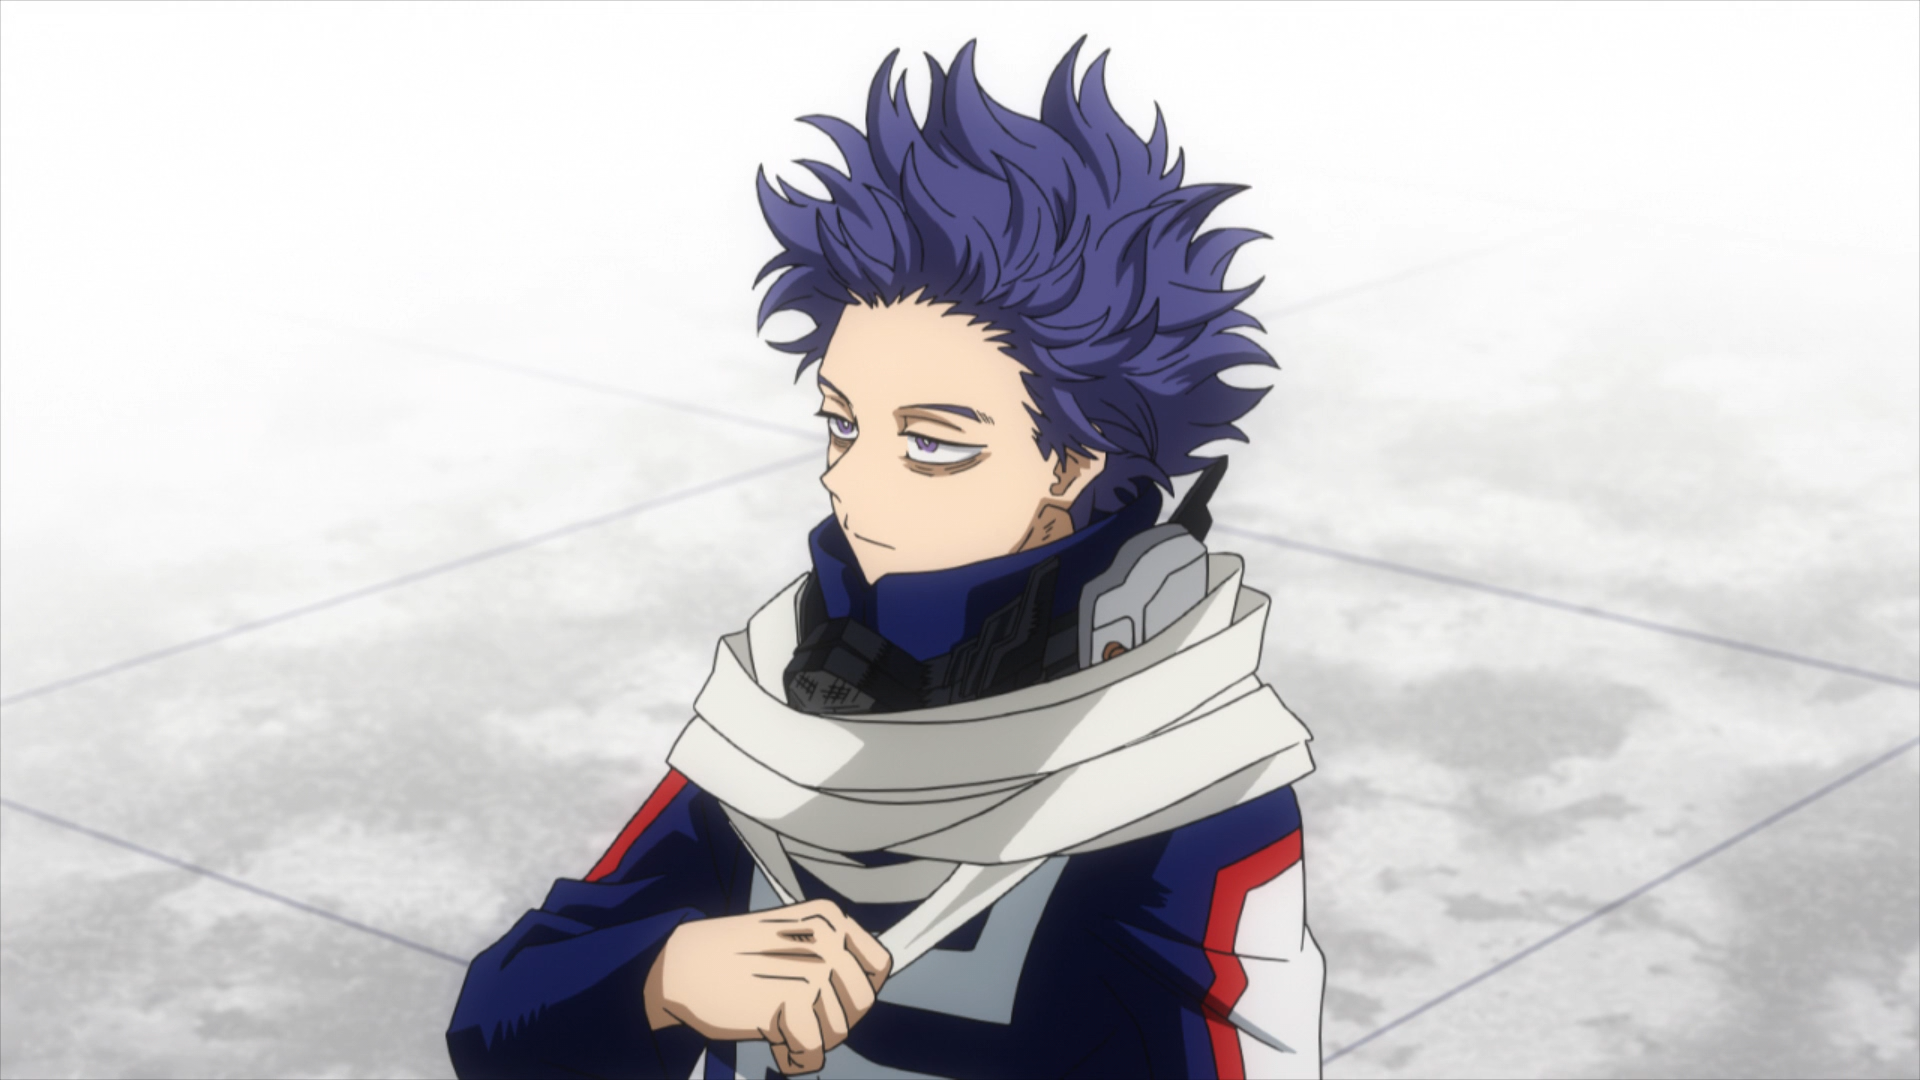 Shinso Is Transferred Into The Hero Class